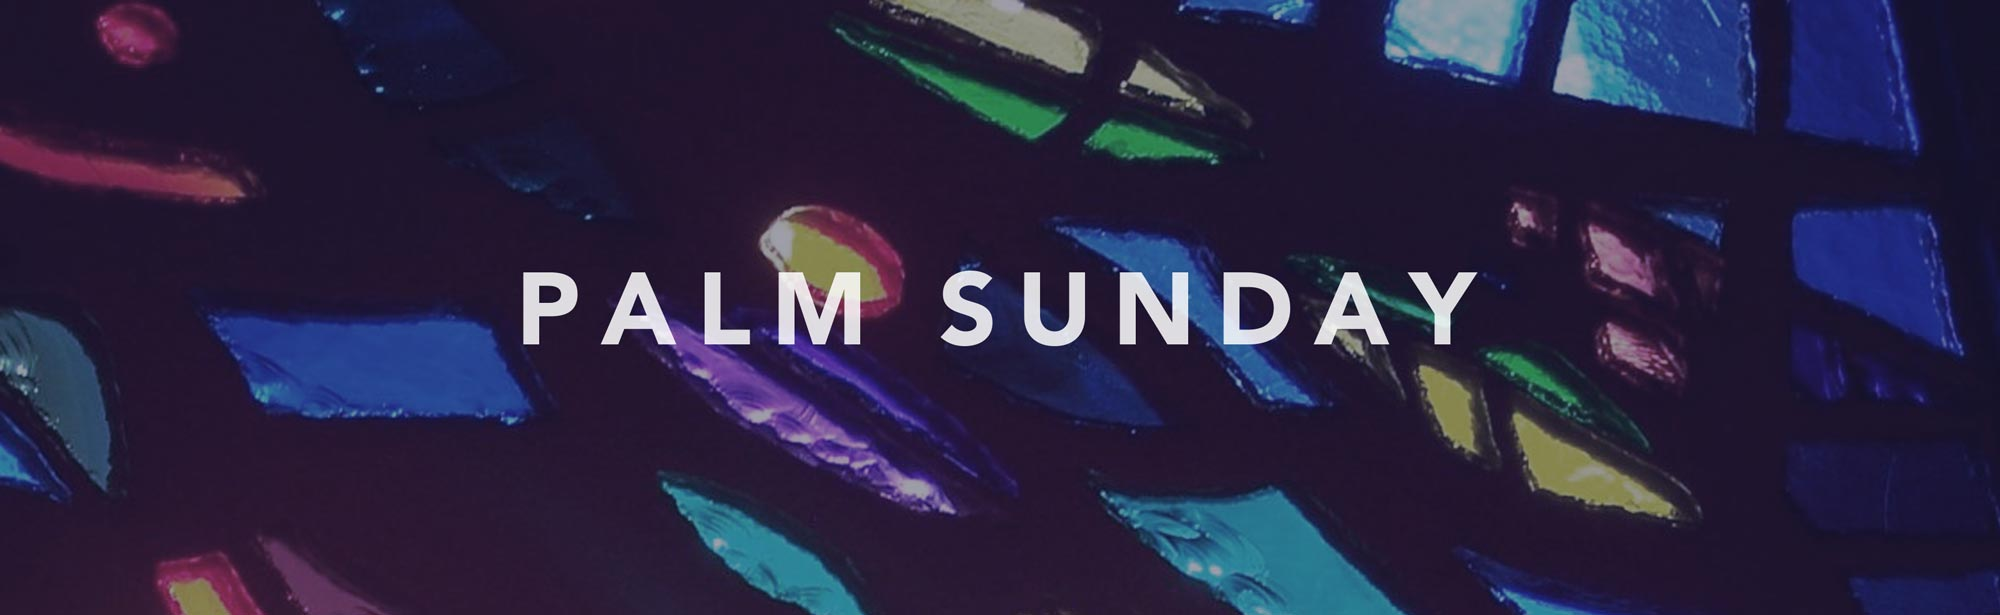 Palm Sunday - Sunday, April 9th at 9am & 11am - Grace Community Church